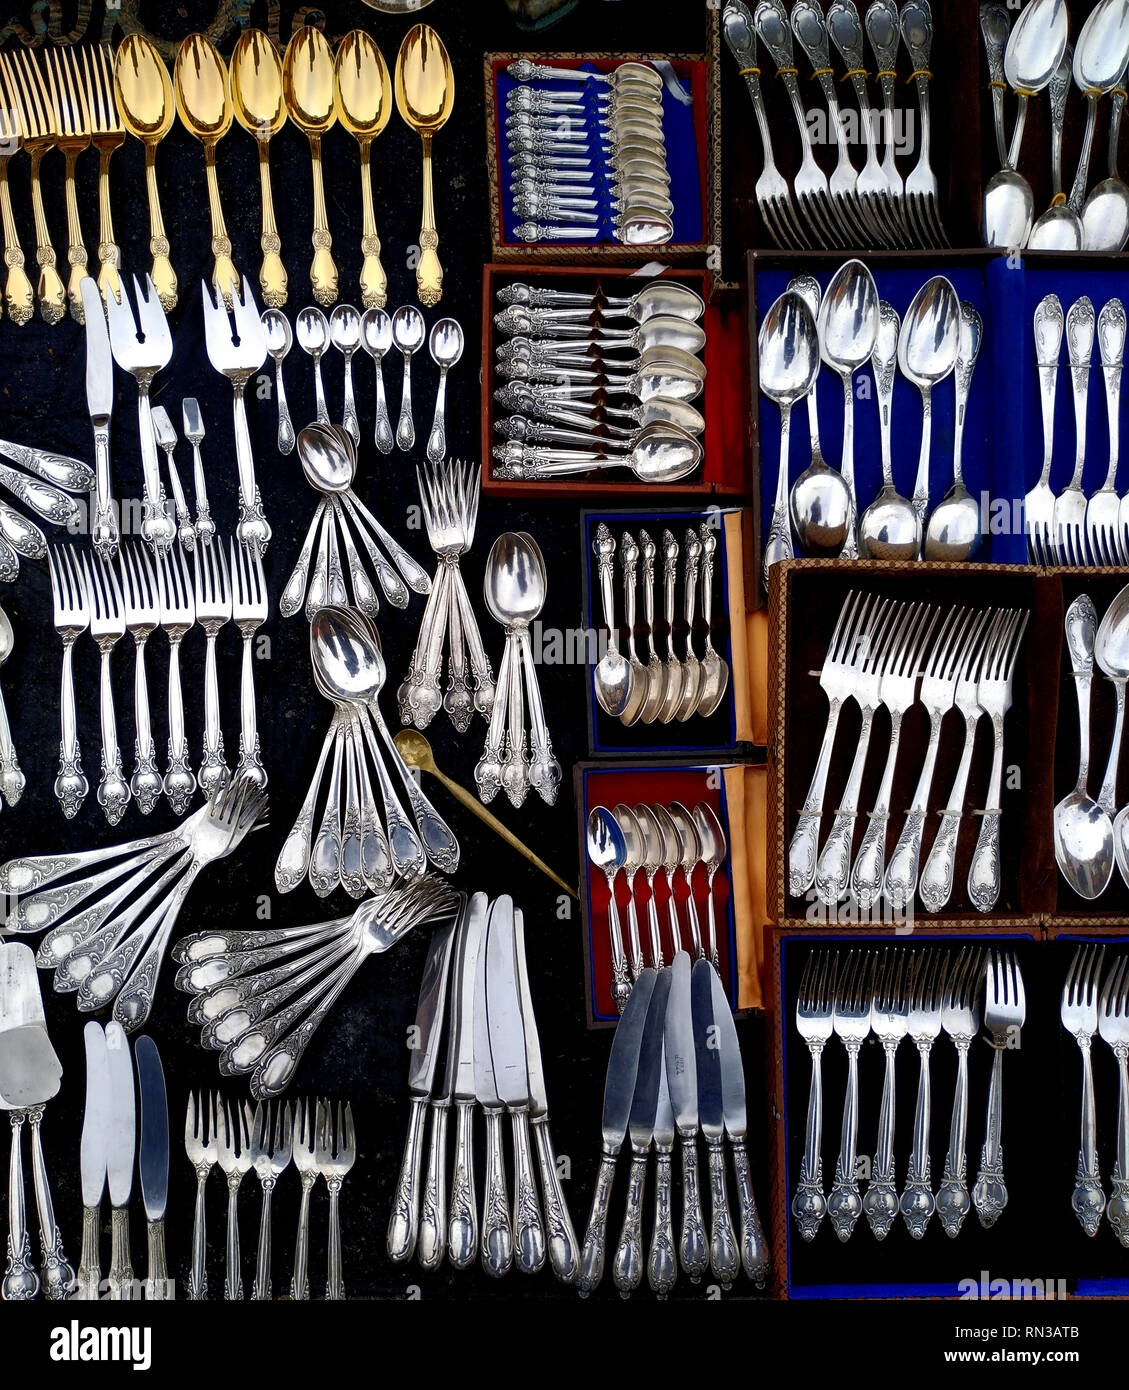 Used Flatware For Sale Used Silverware Flatware Sale Flea Stock Photos Used Silverware